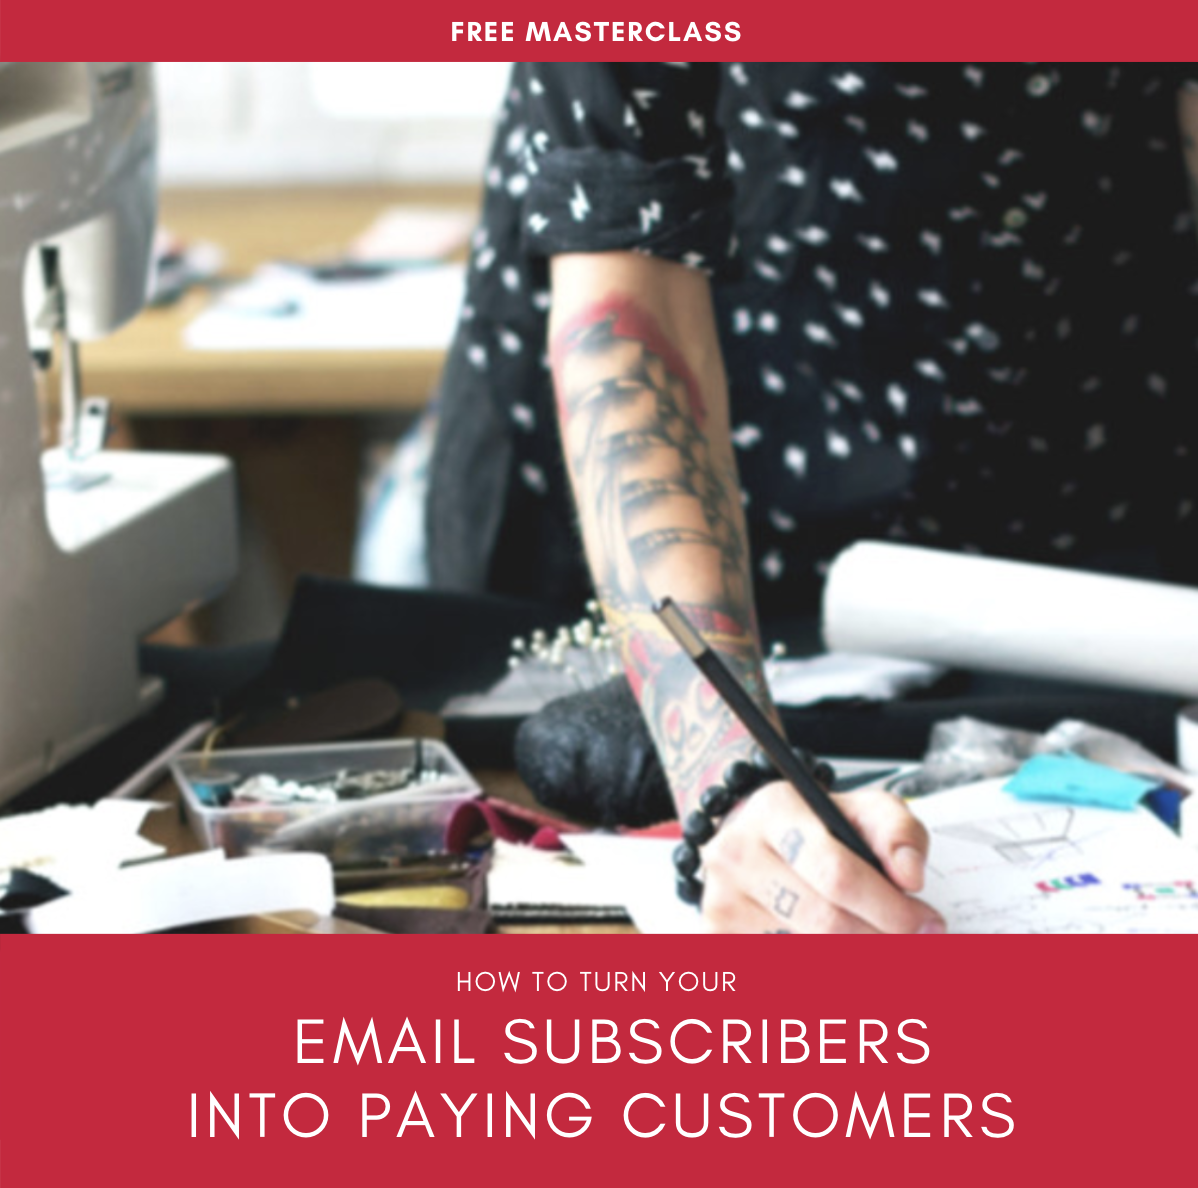 HGow to I turm my email subscribers into paying customers?